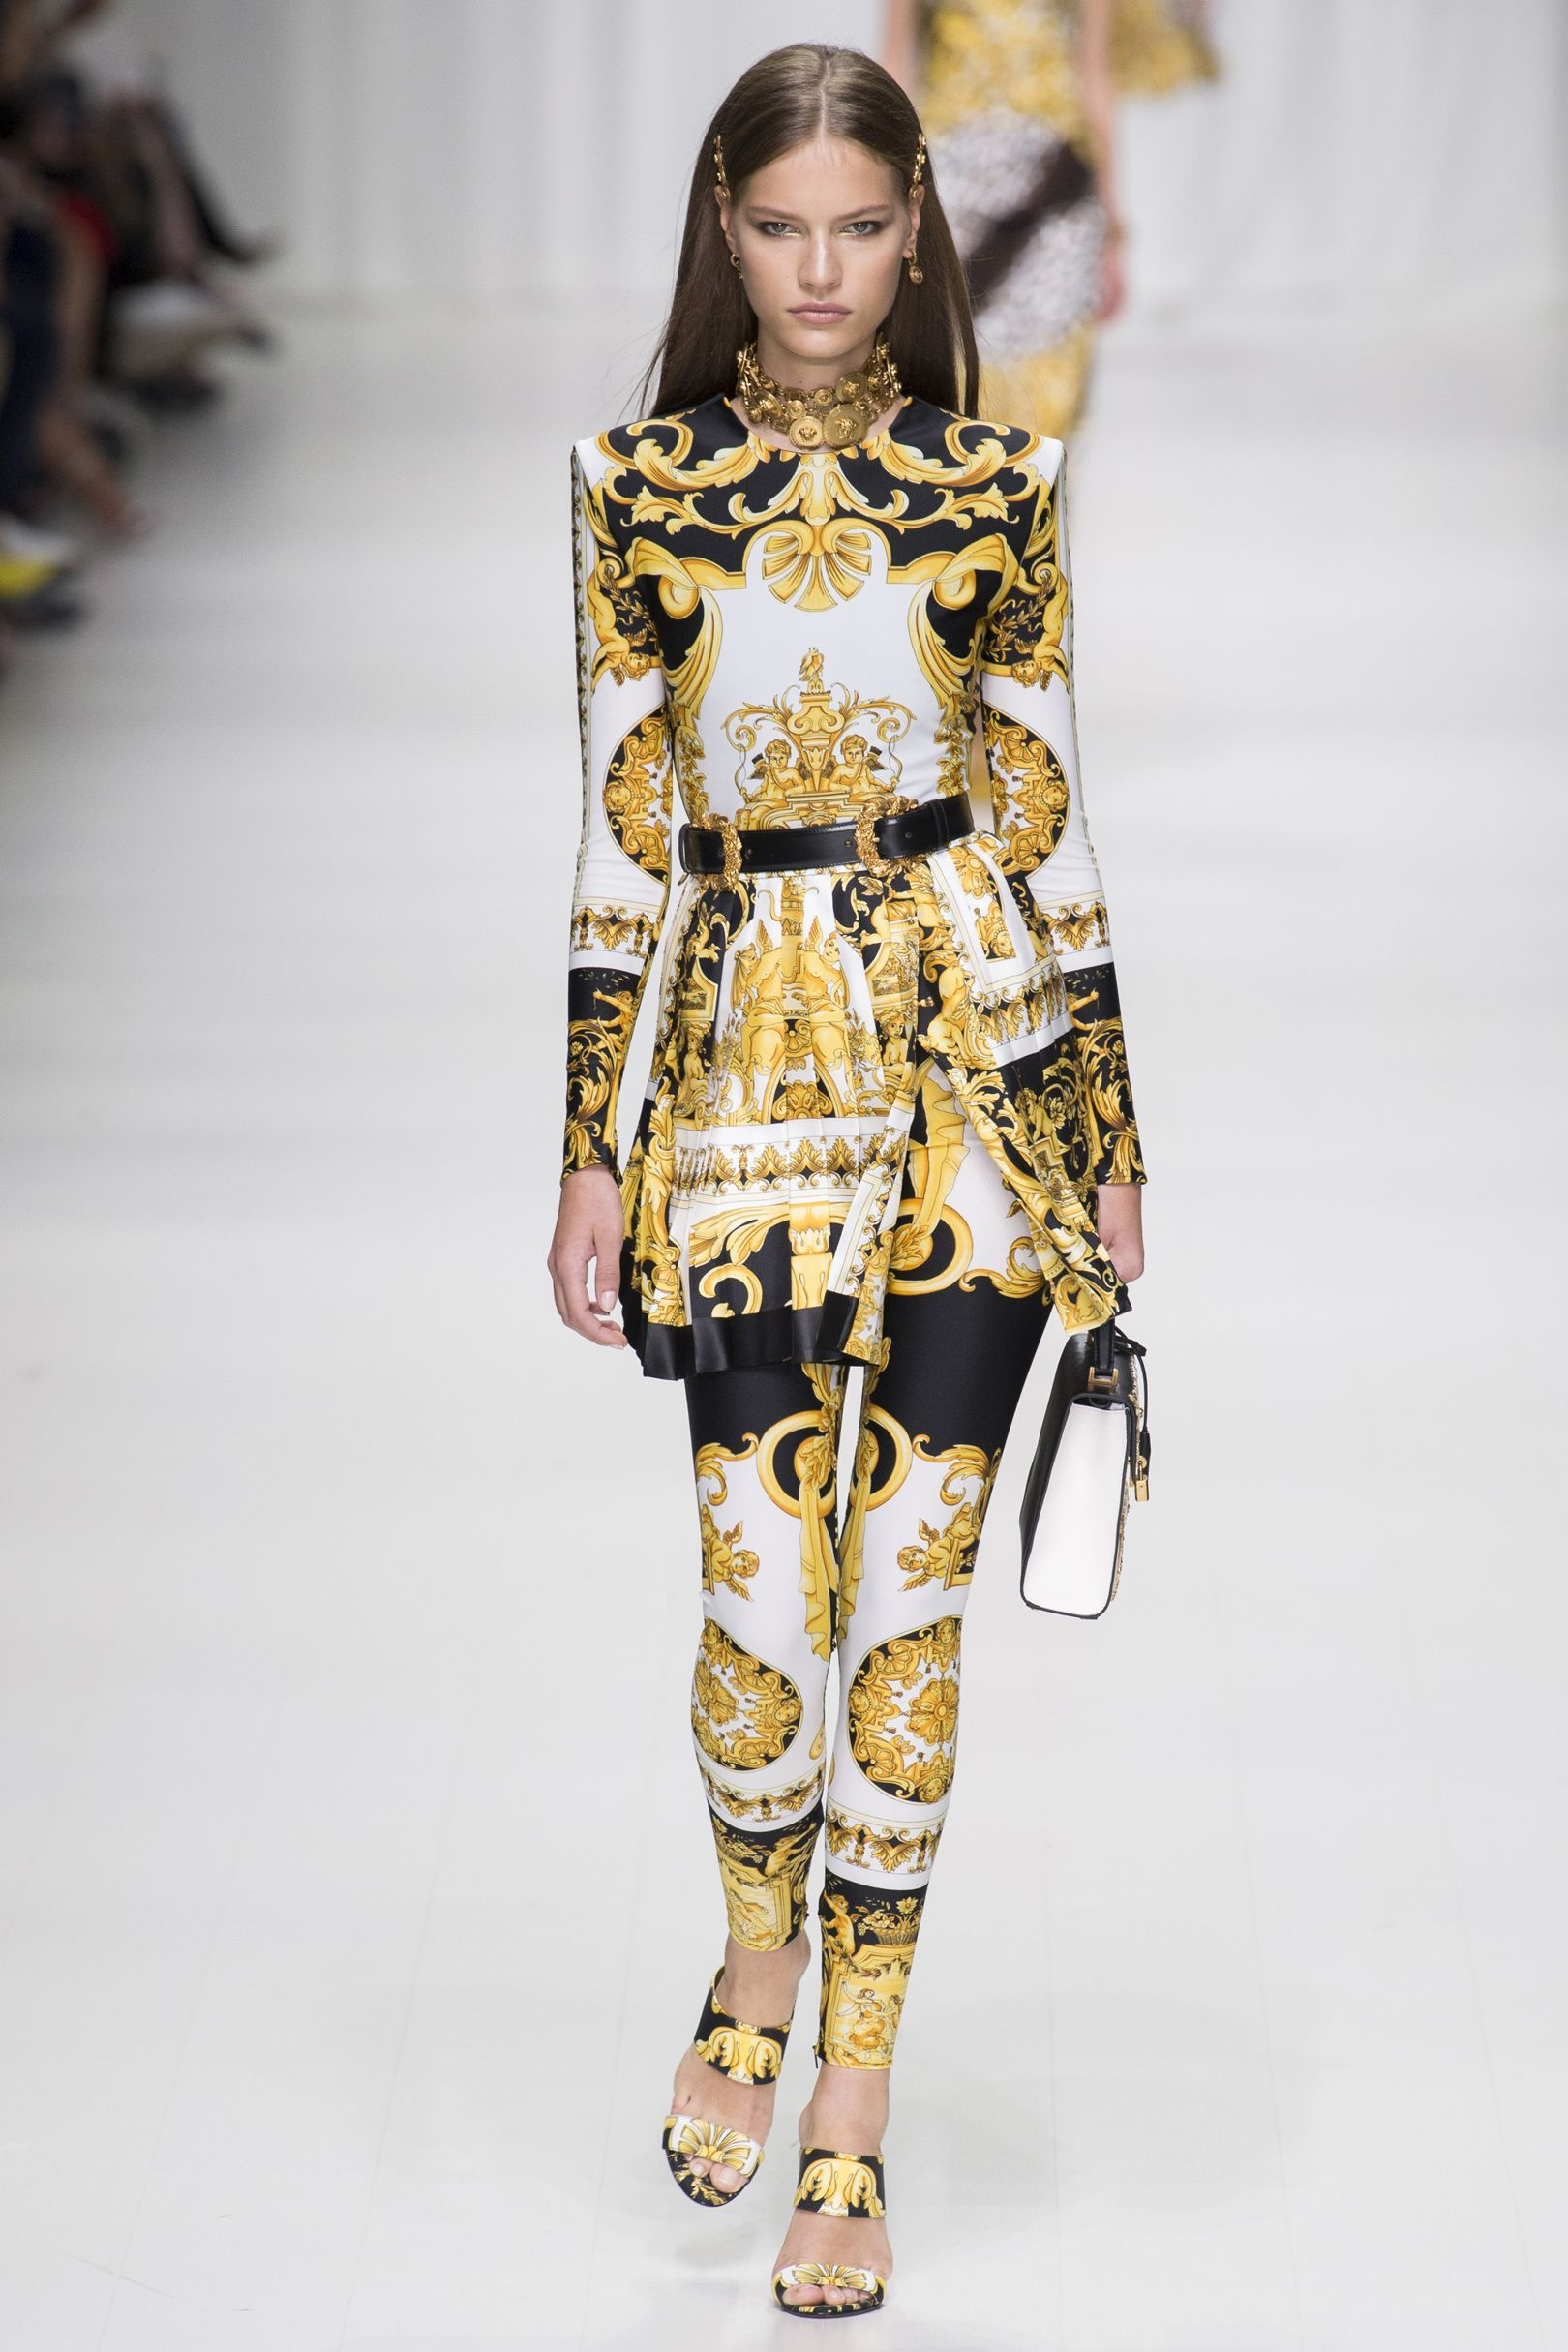 Versace Spring Summer 2018 Ready To Wear   Modeling   Pinterest ... 3ad80fe6bd6